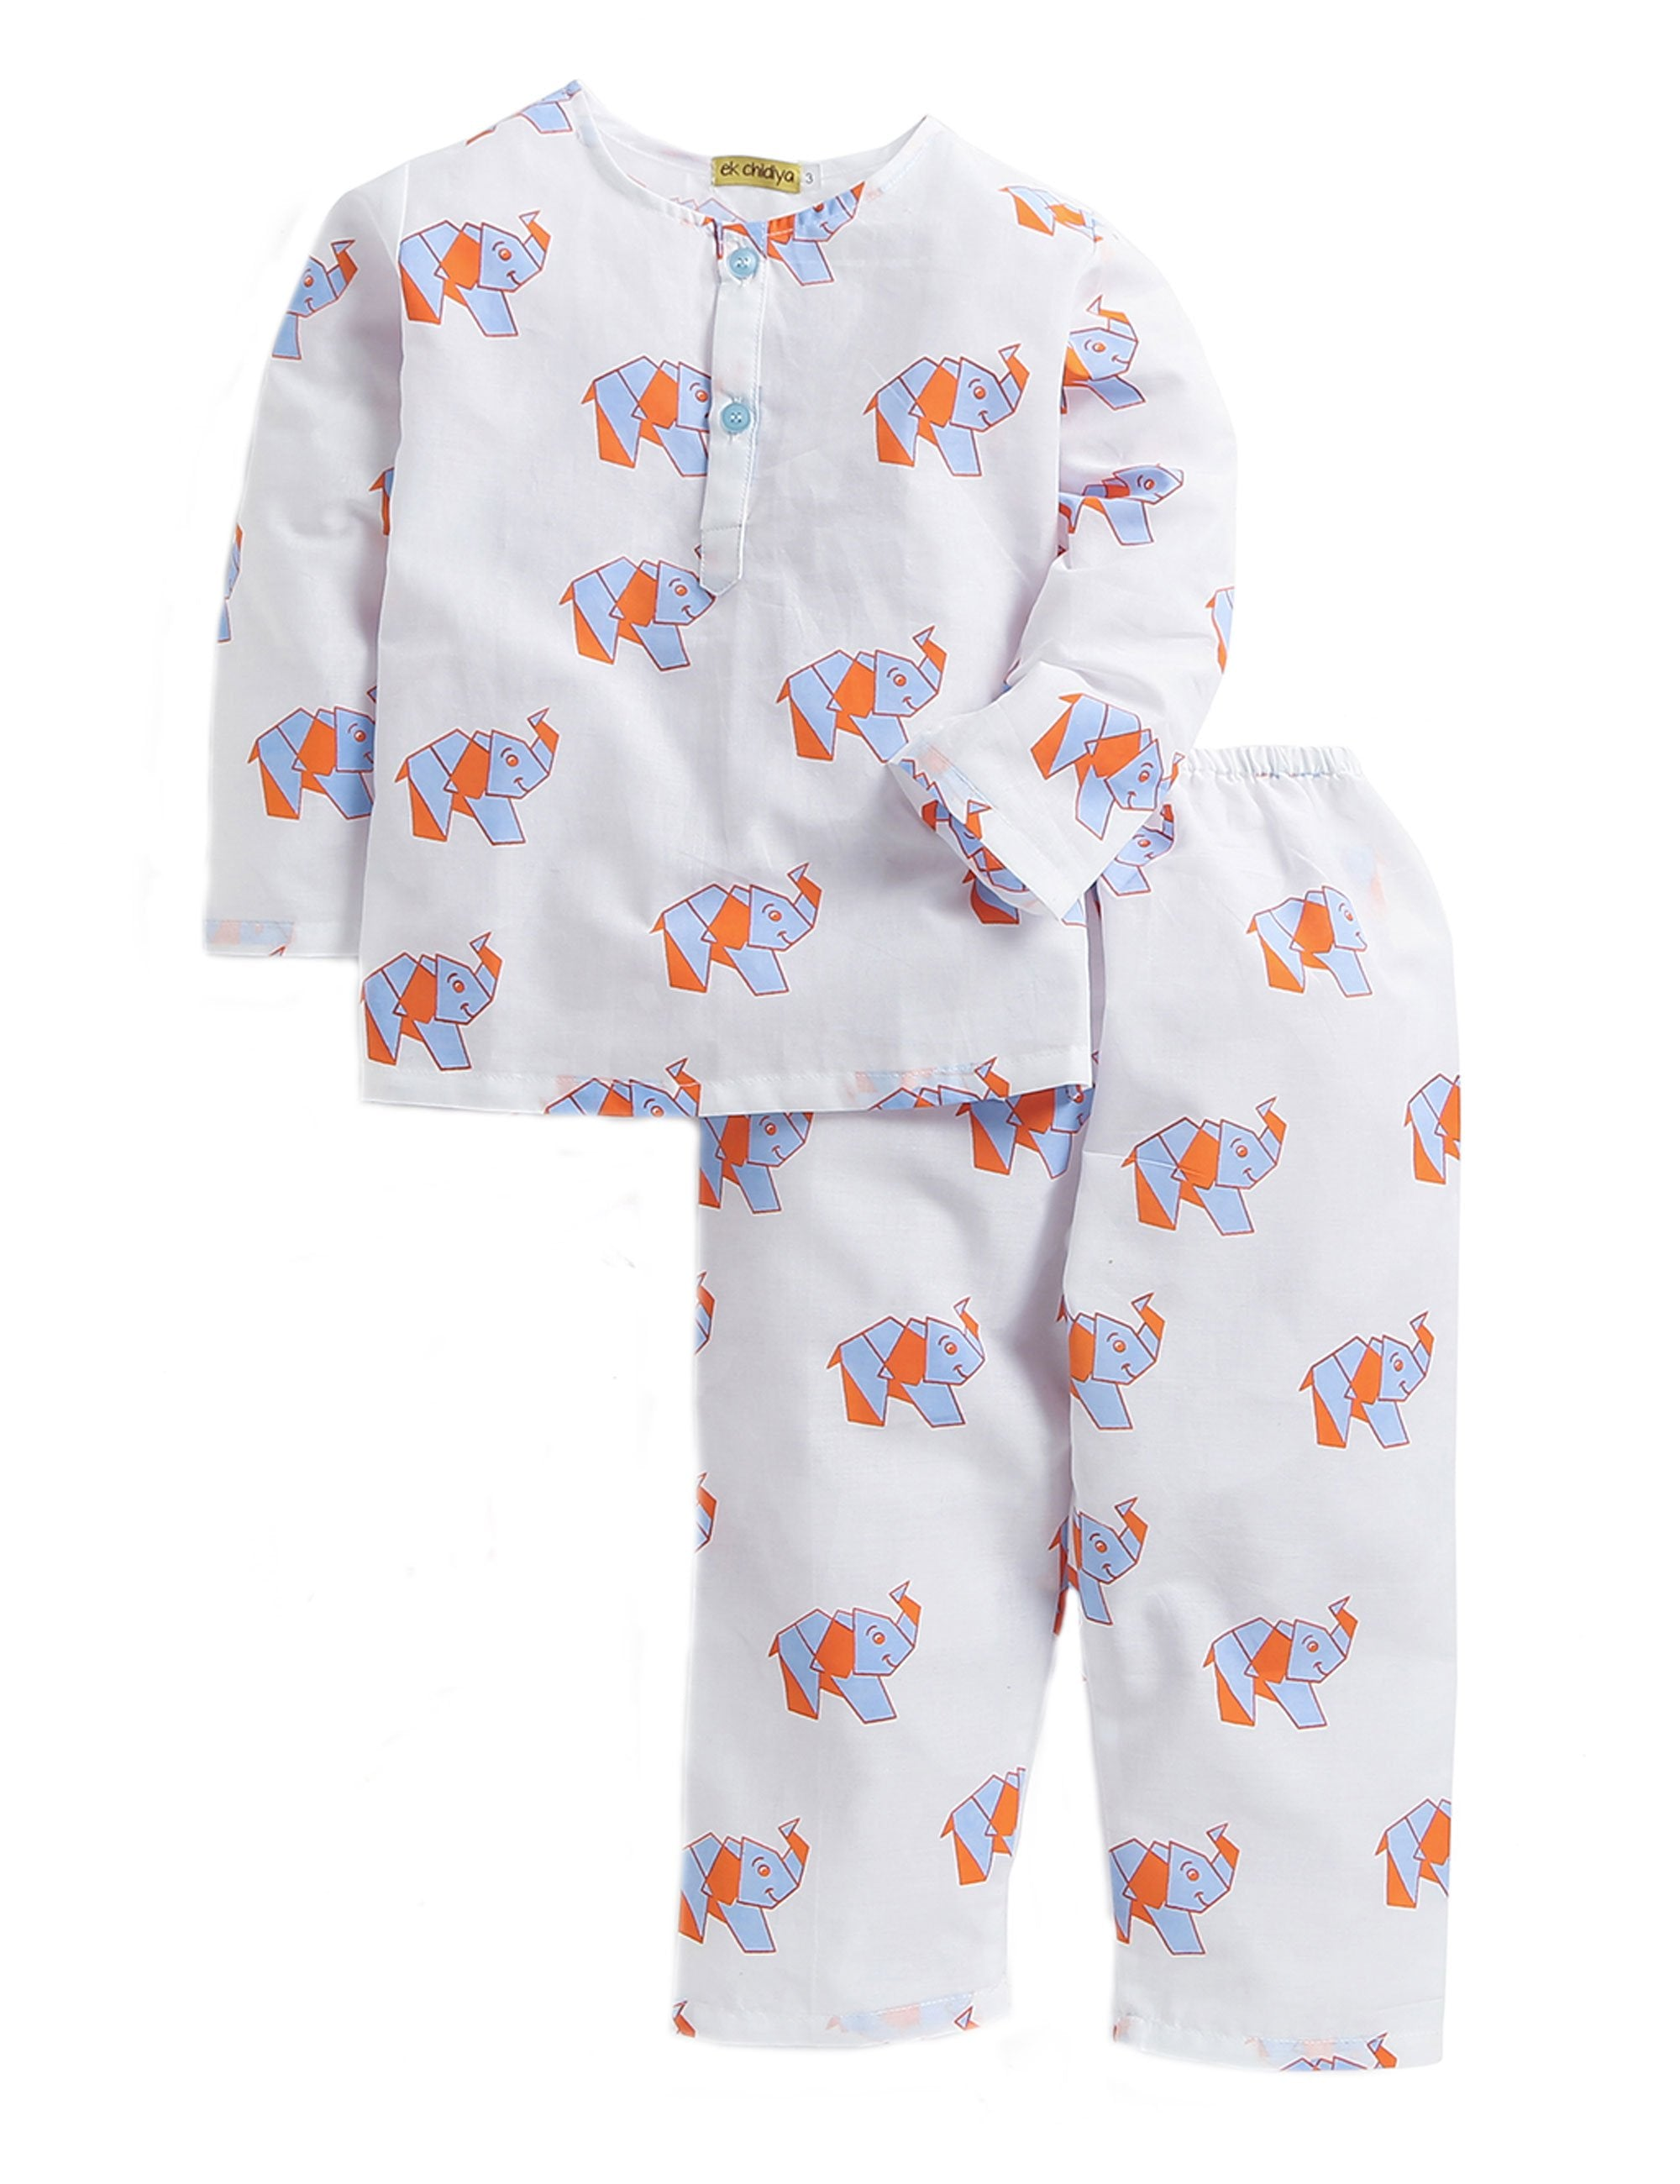 Elephant Print Nightwear In White and Blue Colour for Boys and Girls